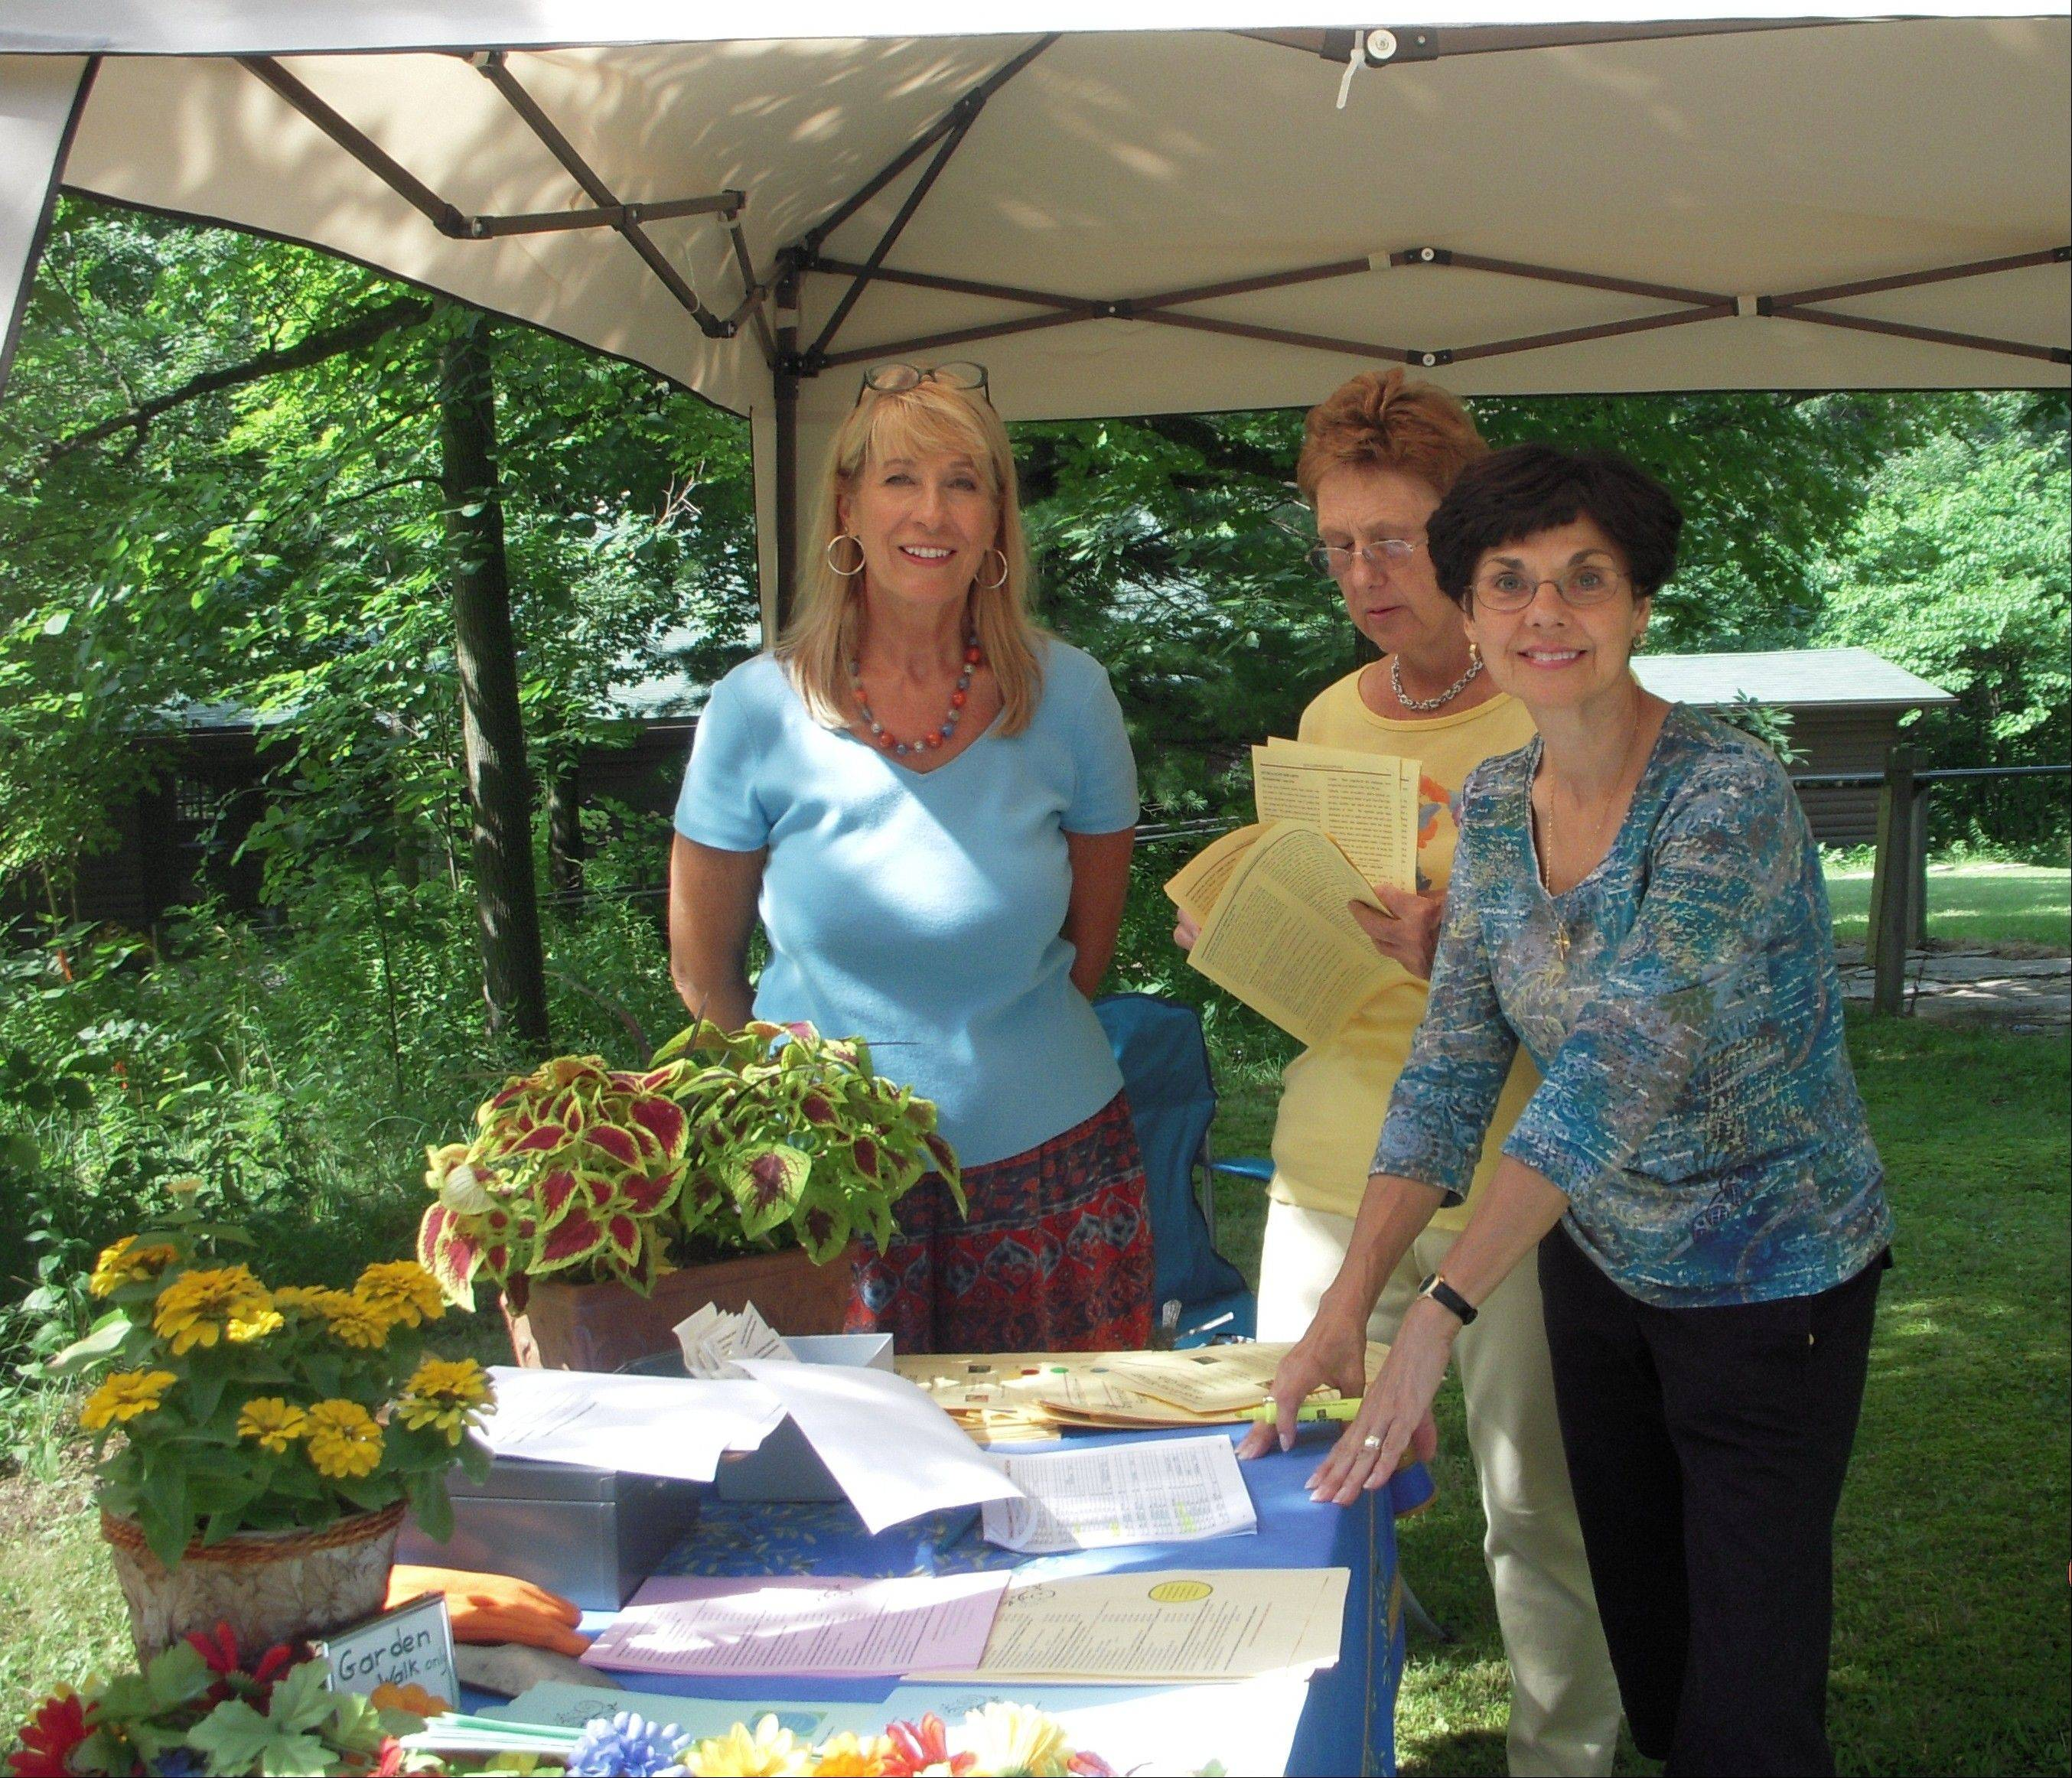 Long Grove-Kildeer Garden Club Garden Walk committee members Ivy Guarise, LaRayne Scharm and Barb D�Ambrosio set up the greeting station for the July 11 Garden Walk through four area gardens.